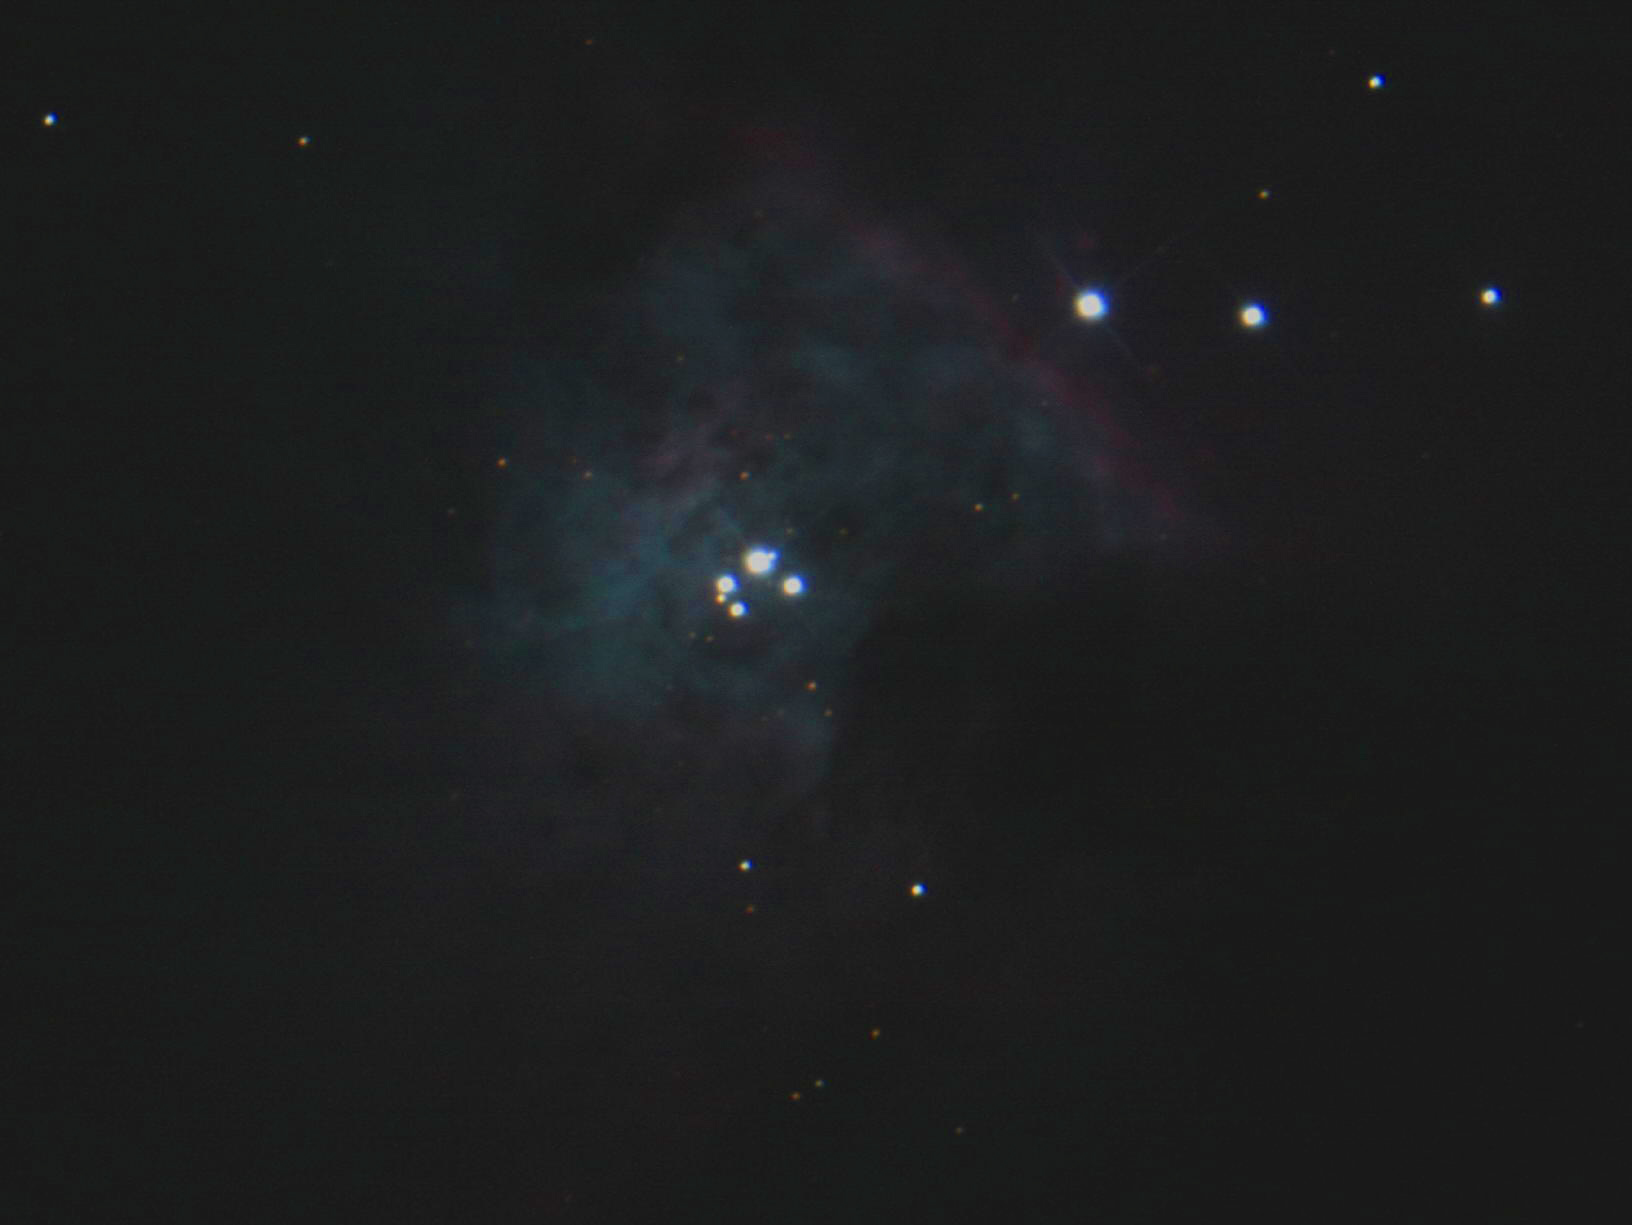 nebula orion telescope - photo #29